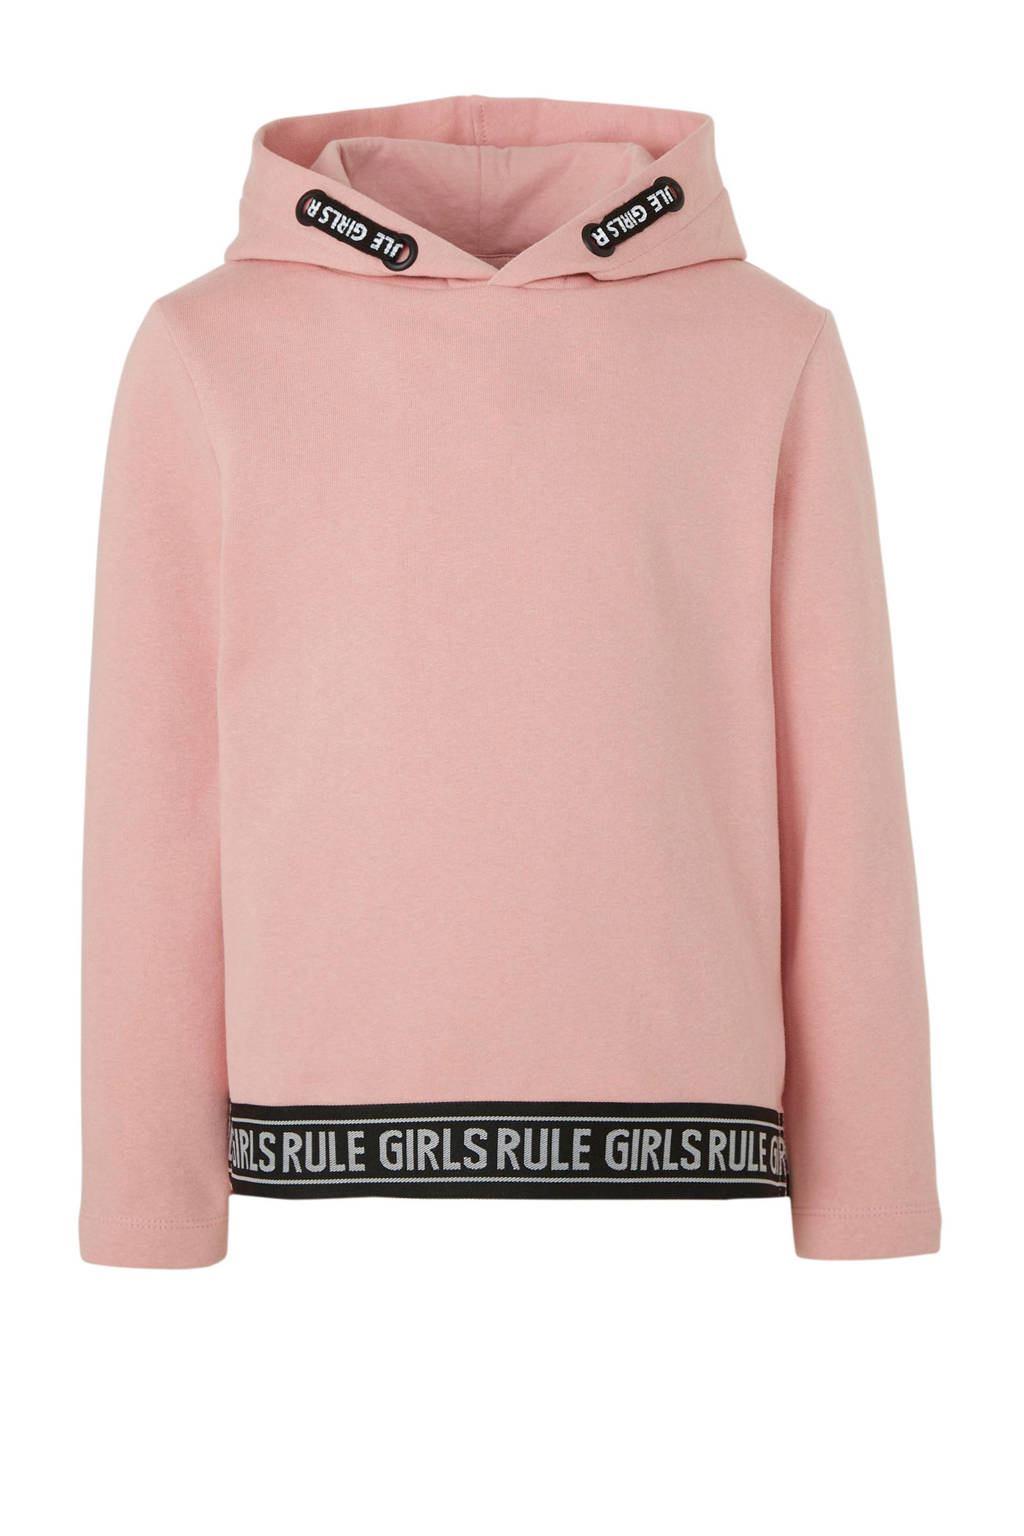 C&A Here & There hoodie met contrastbies roze, Roze